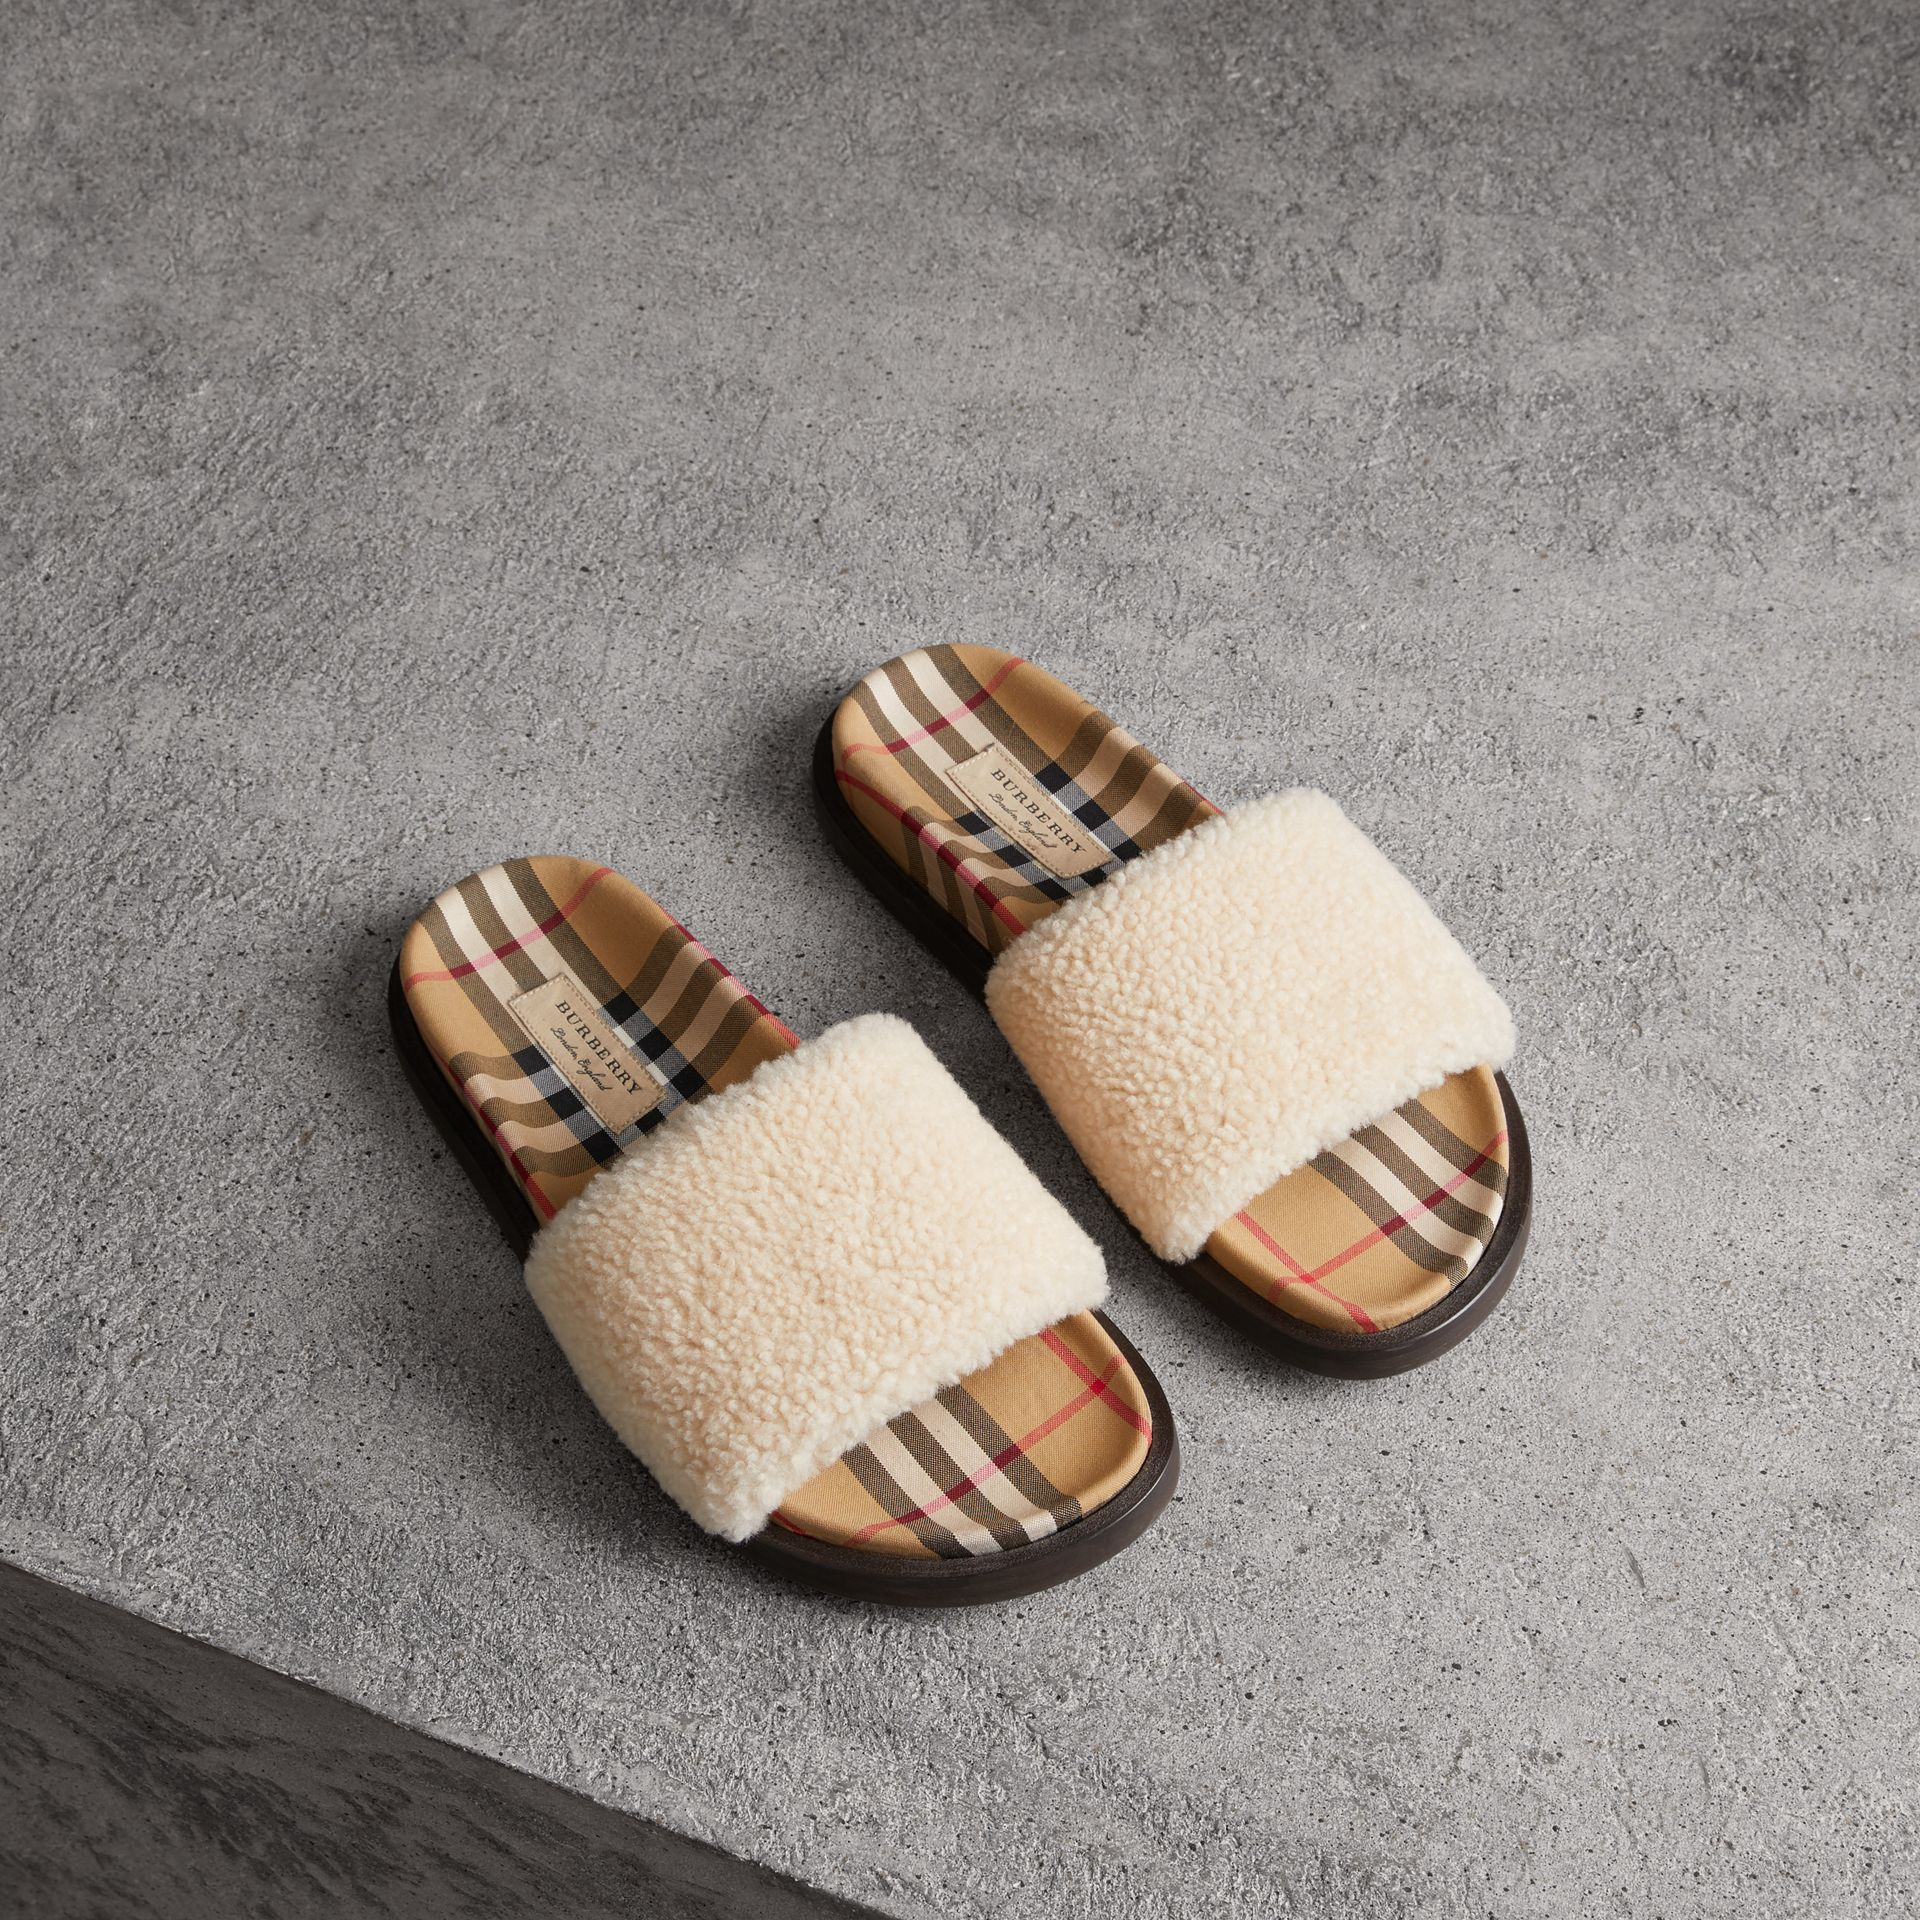 Shearling and Vintage Check Slides in Natural - Women | Burberry - gallery image 0